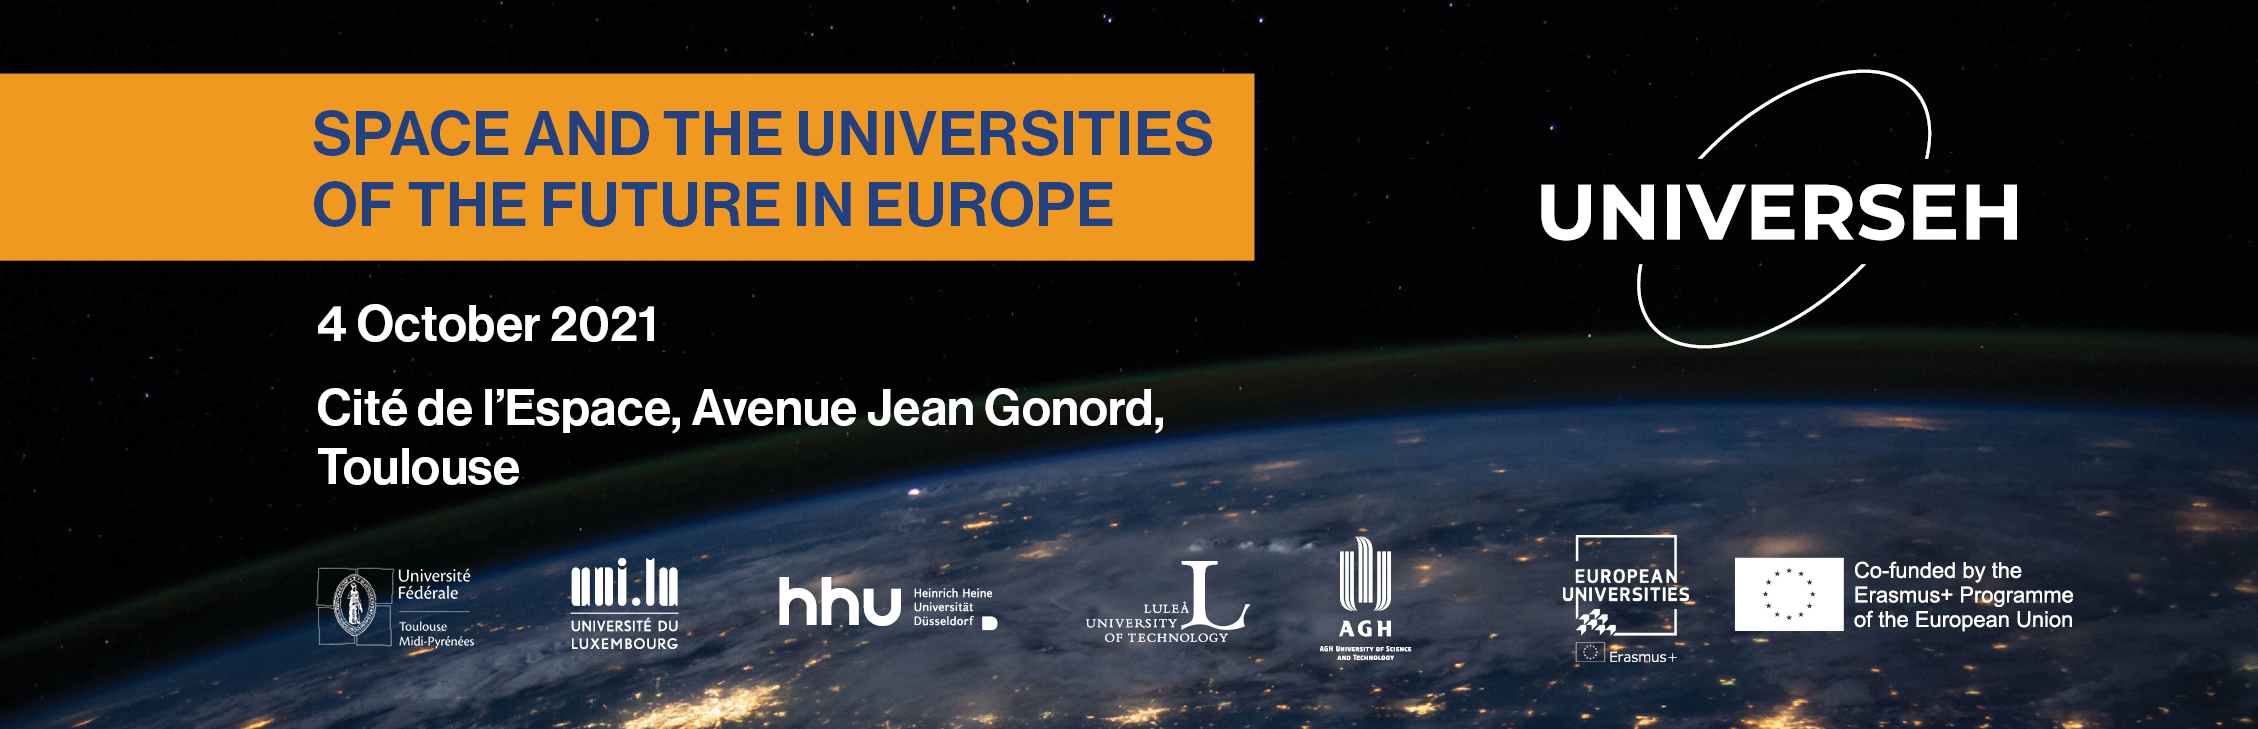 Conference Space and the Universities of the Future in Europe 4 October